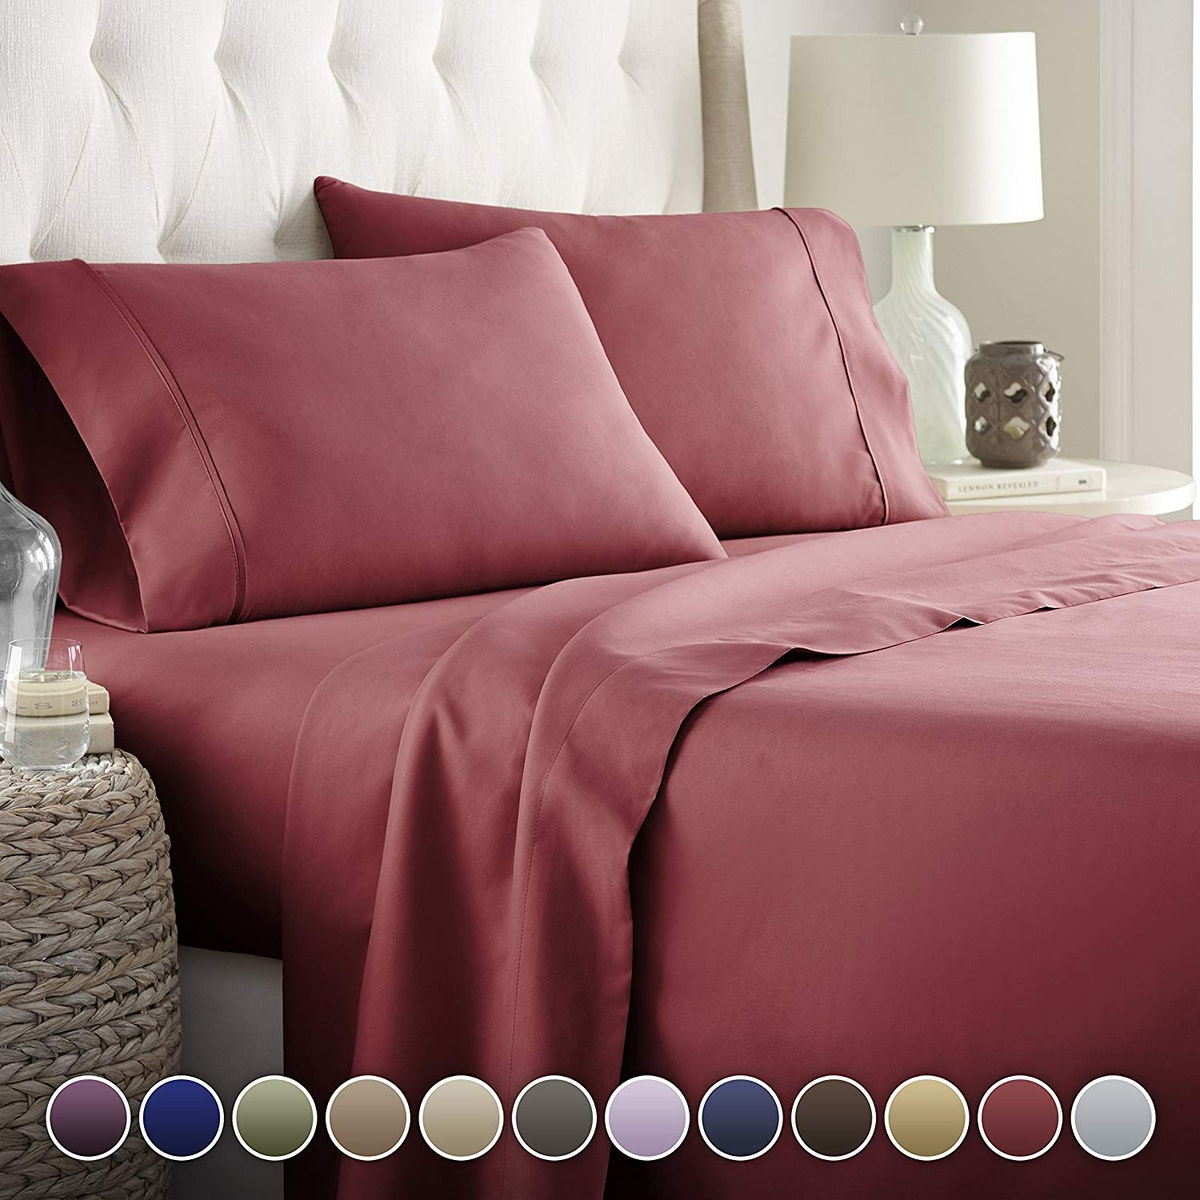 HC COLLECTION Hotel Luxury Bed Sheets Set